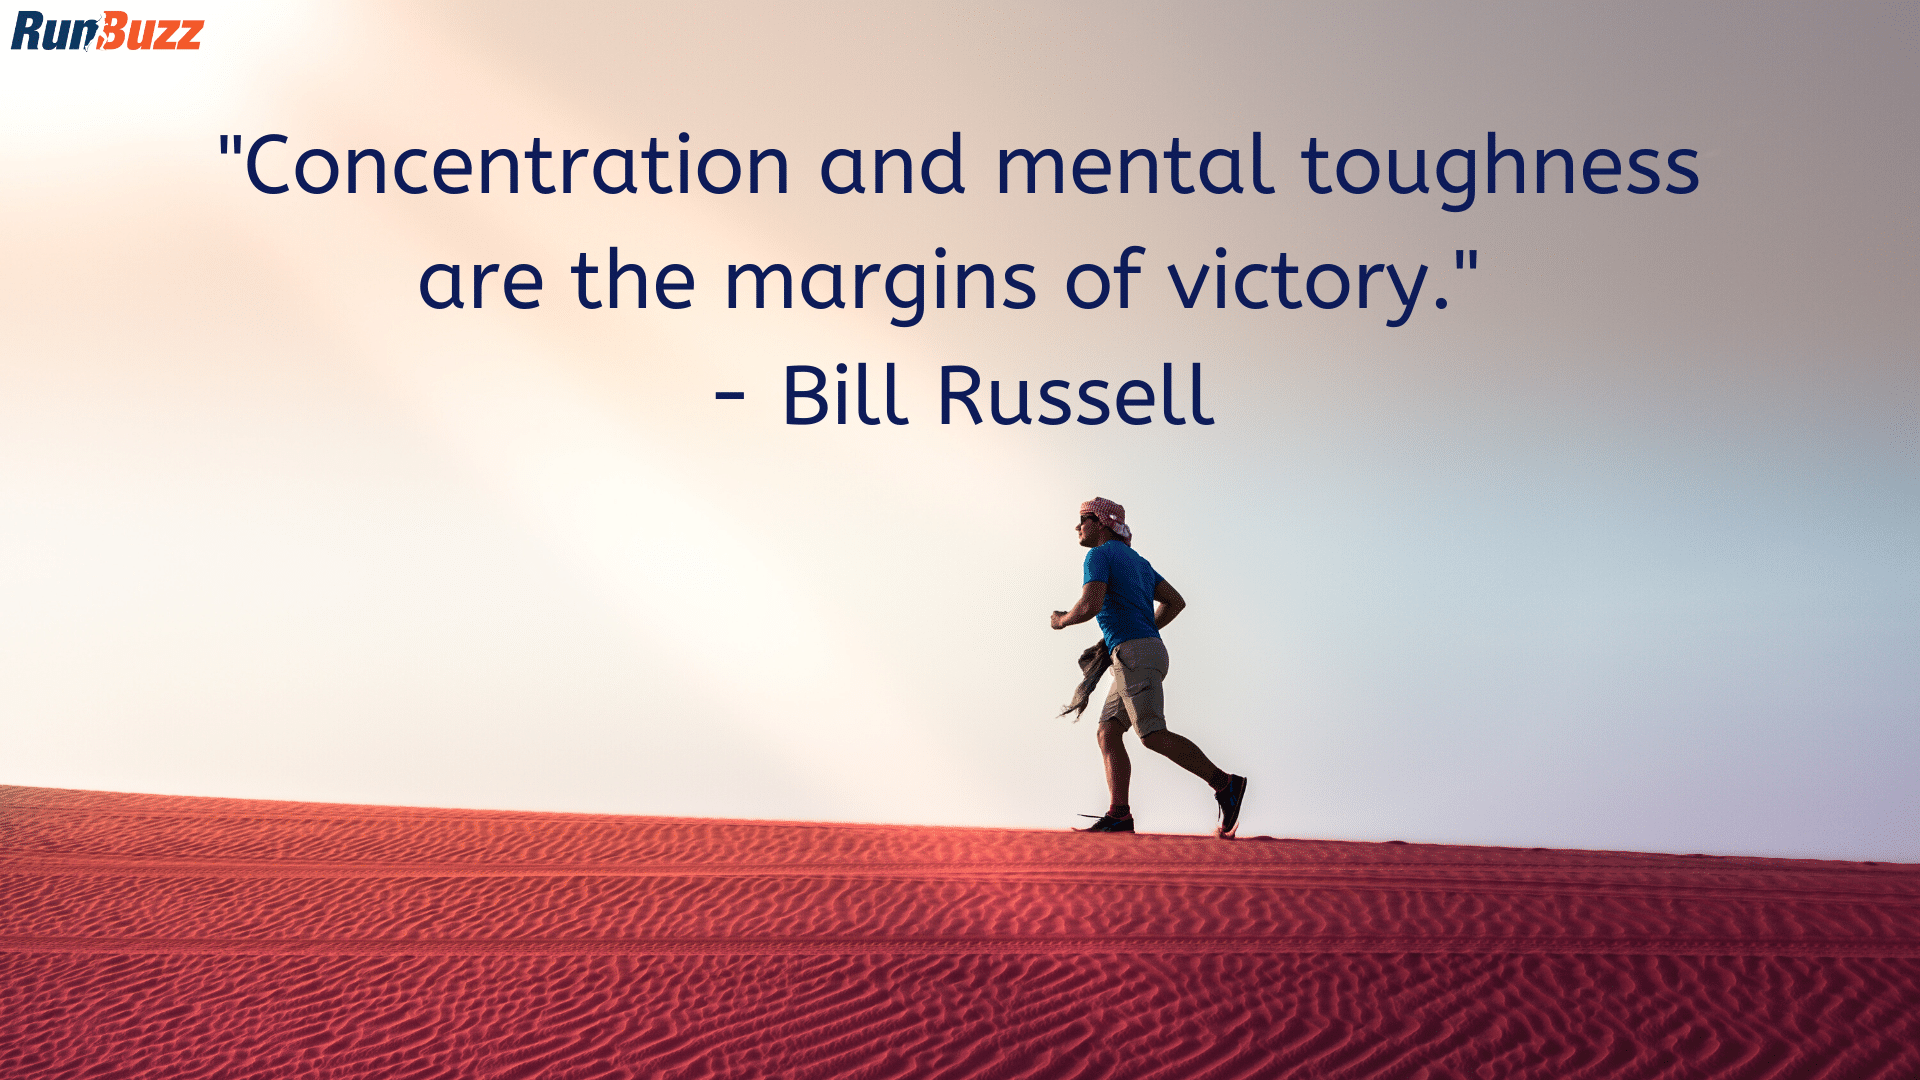 Concentration-and-mental-toughness